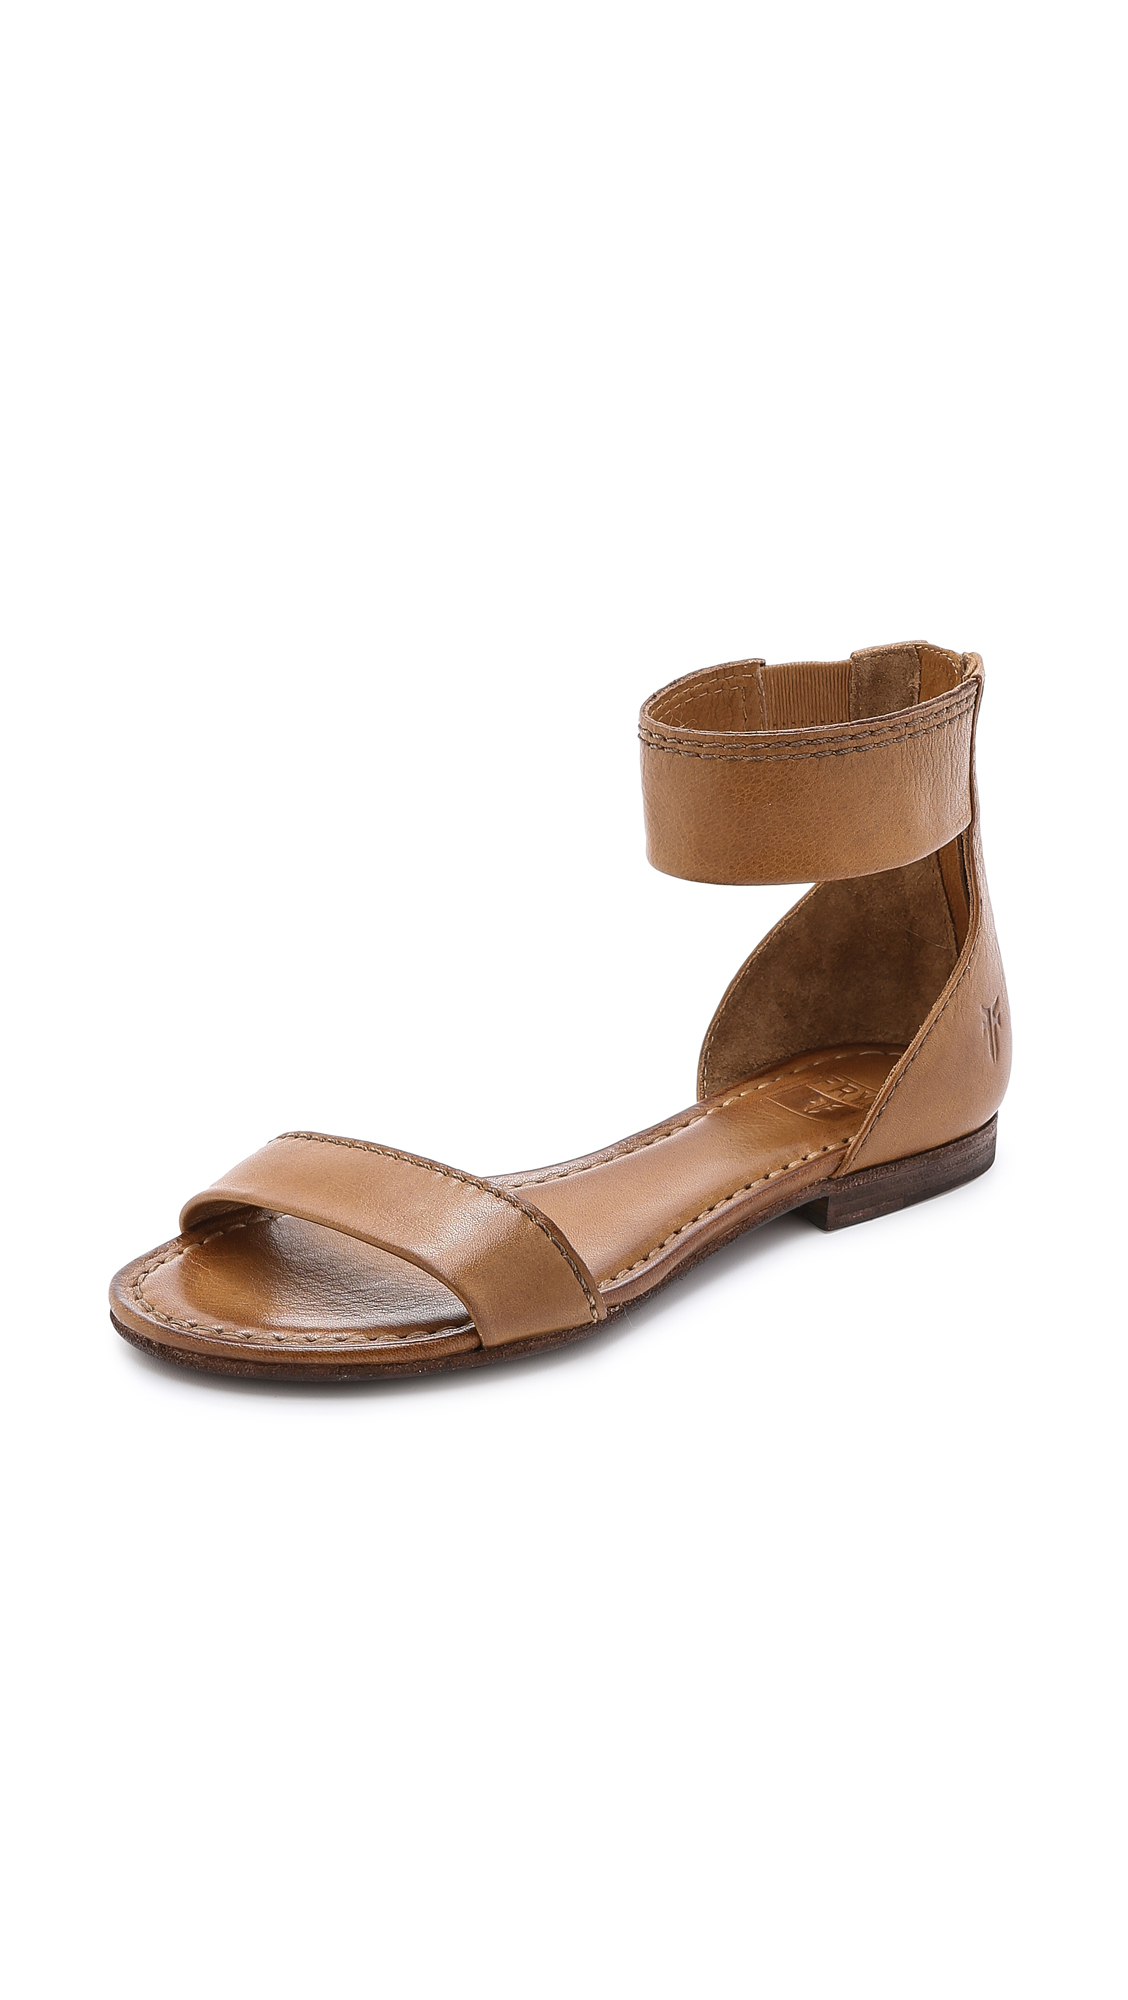 Lyst Frye Carson Ankle Zip Flat Sandals Camel In Natural